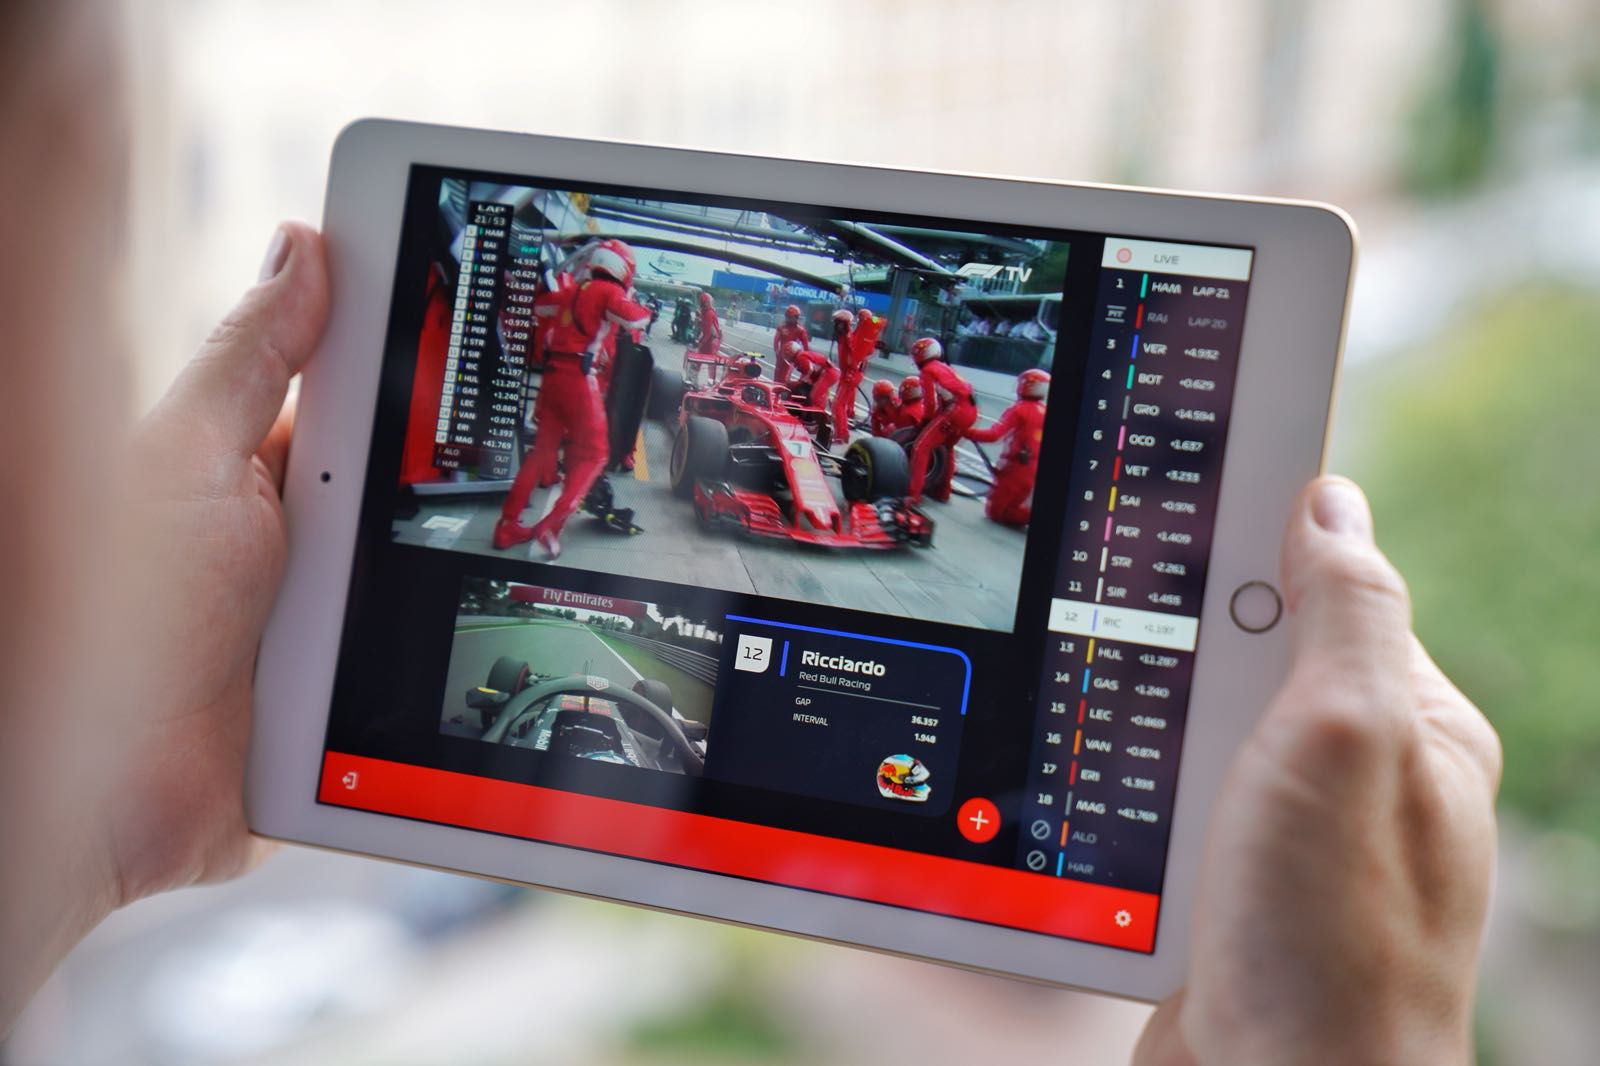 First Look: F1 TV app review - The way you want to watch Formula One